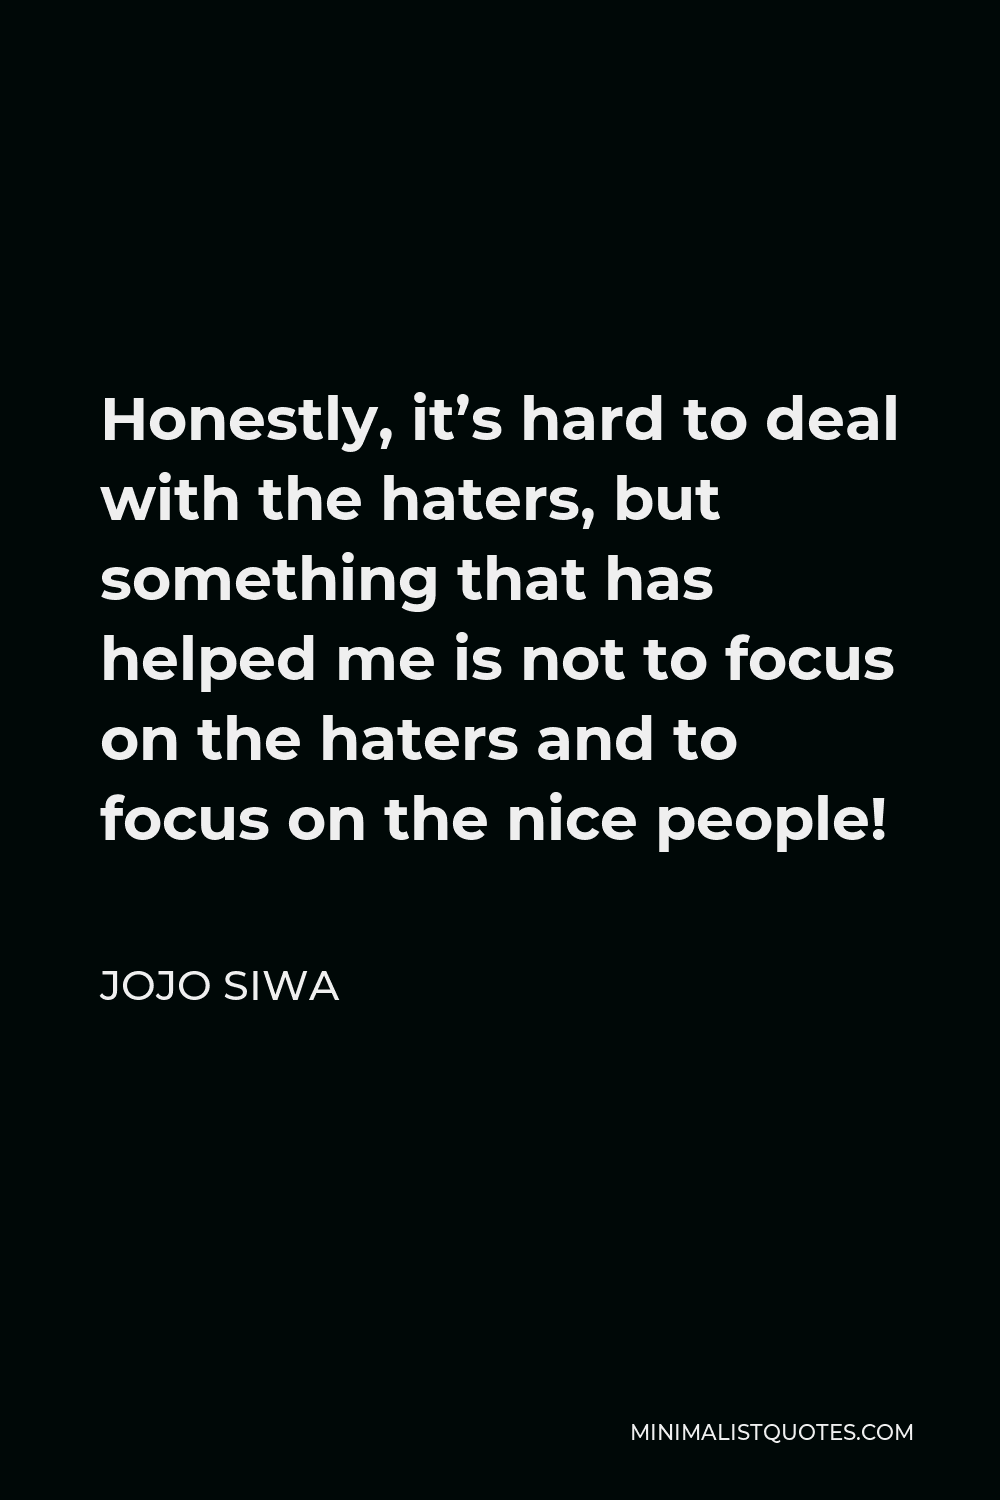 JoJo Siwa Quote - Honestly, it's hard to deal with the haters, but something that has helped me is not to focus on the haters and to focus on the nice people!